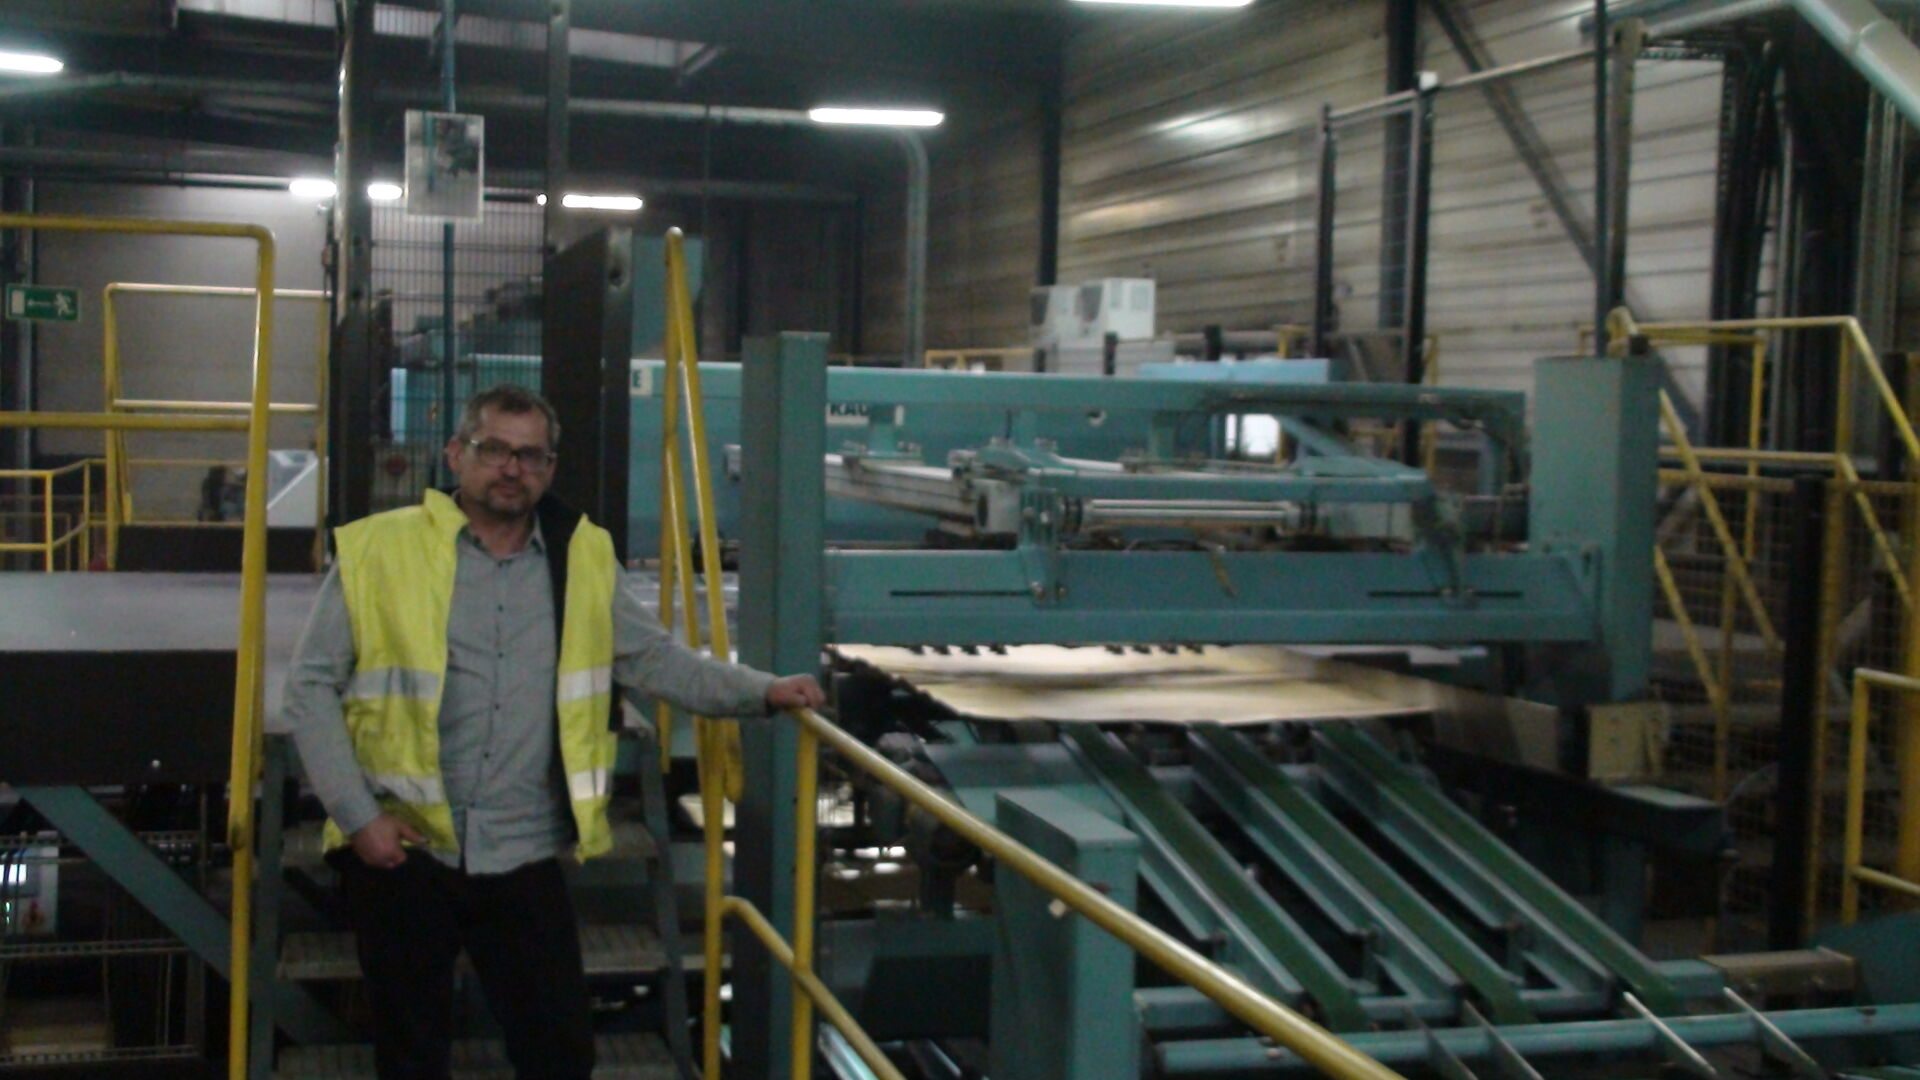 """""""We are very pleased with the Raute customer service. Our service contact with Raute and their 24/7 hotline guarantee trouble-free production."""" Jarosław Ludkiewicz, Manager of Paged's mill in Morag"""